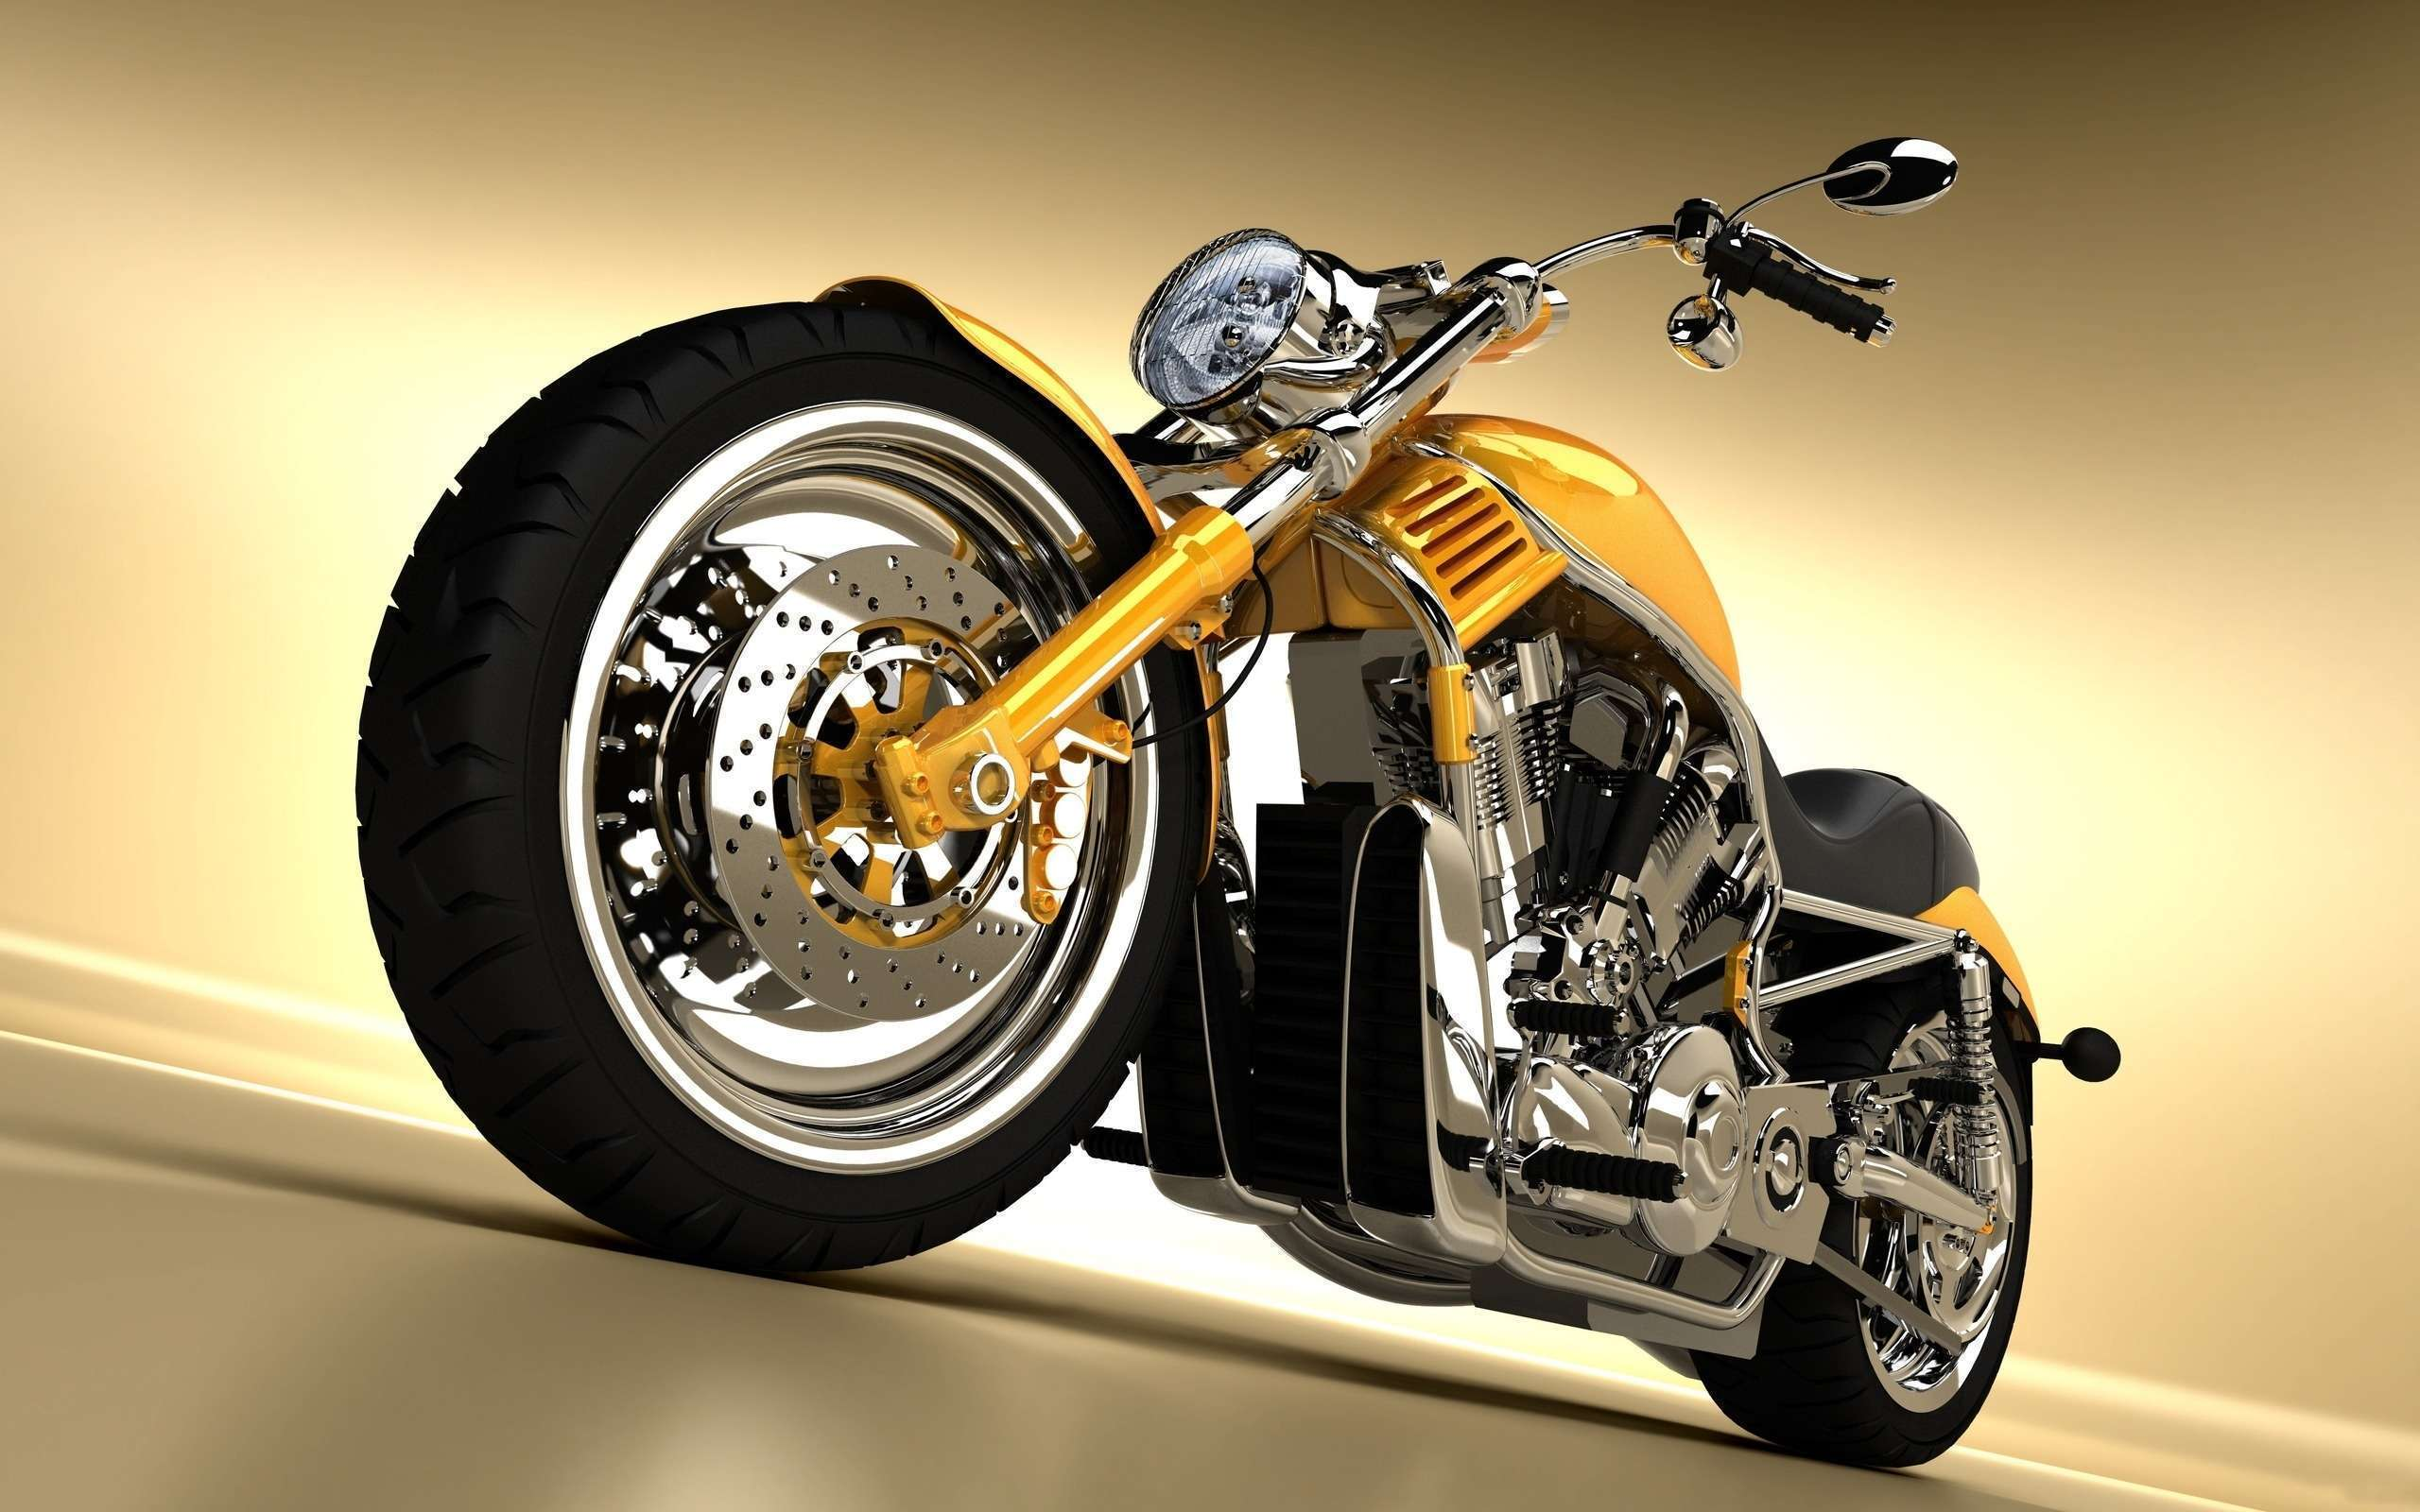 Yellow bmw bike wallpaper hd car wallpapers - Best wallpapers of cars and bikes ...